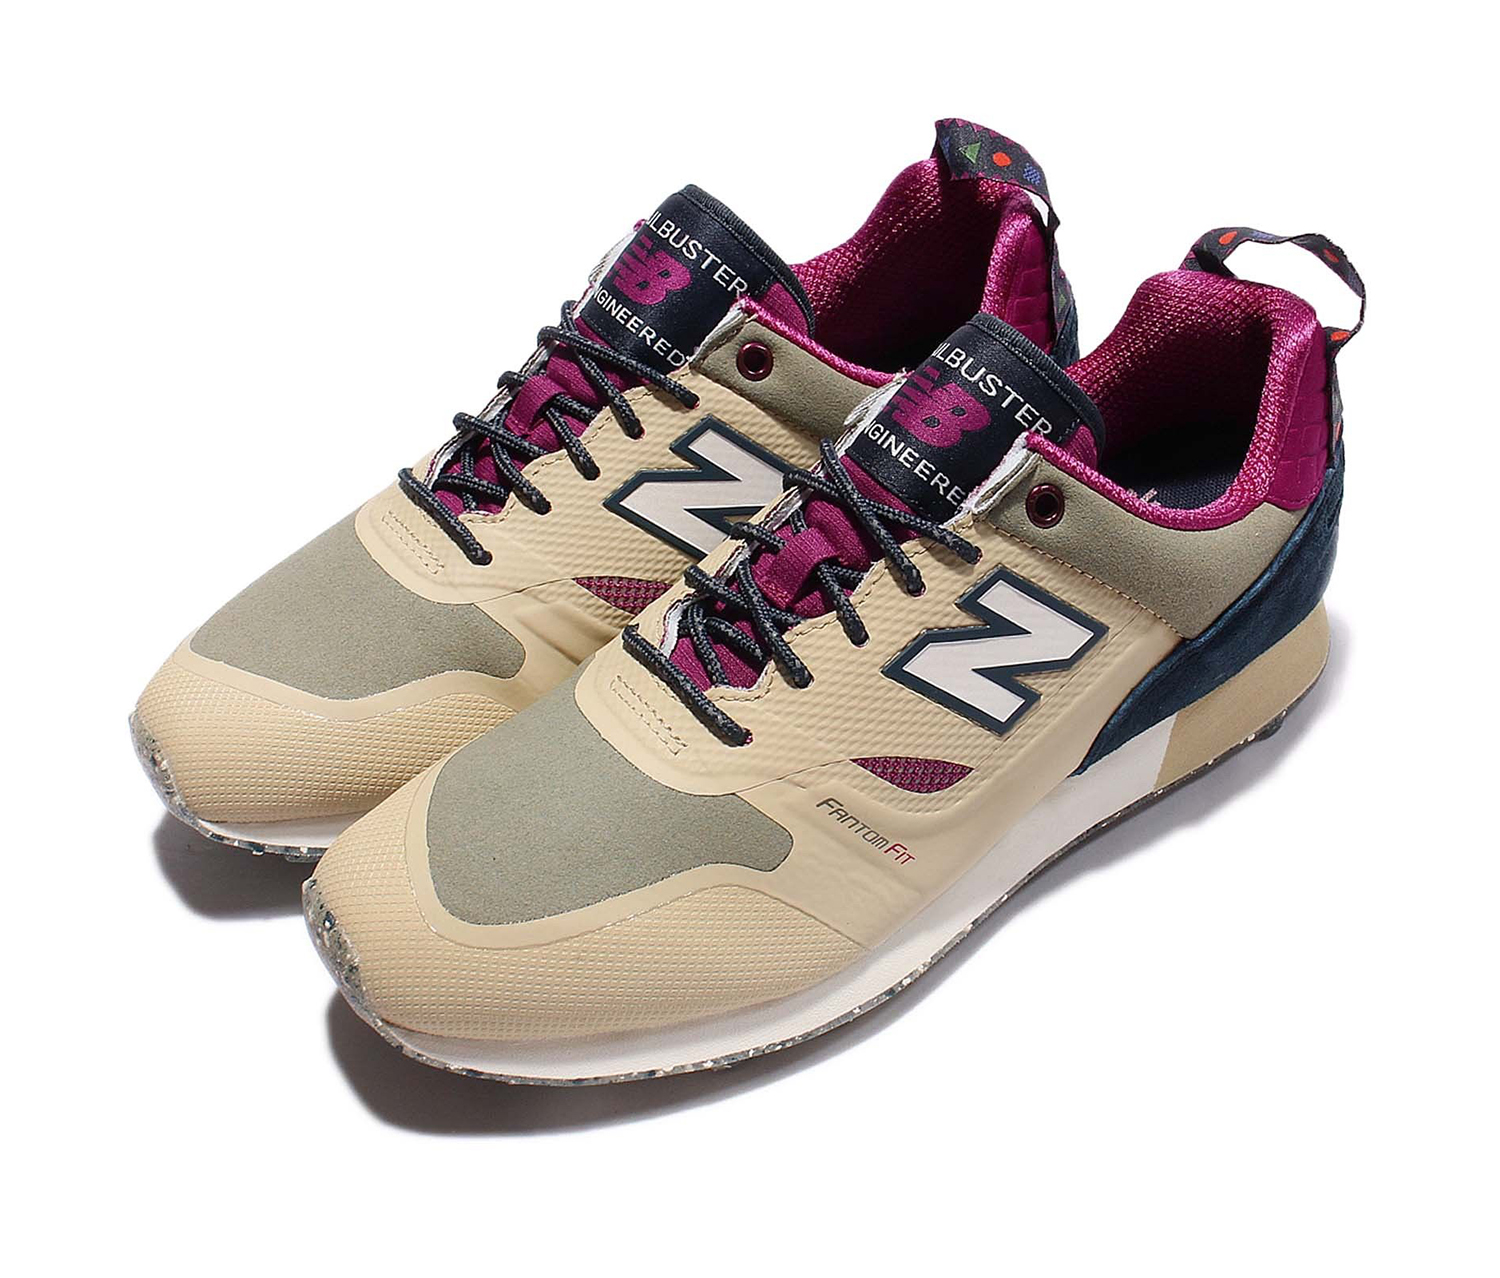 New Balance Men's Trail buster Re-Engineered Dust Running Shoes, Dust Purple